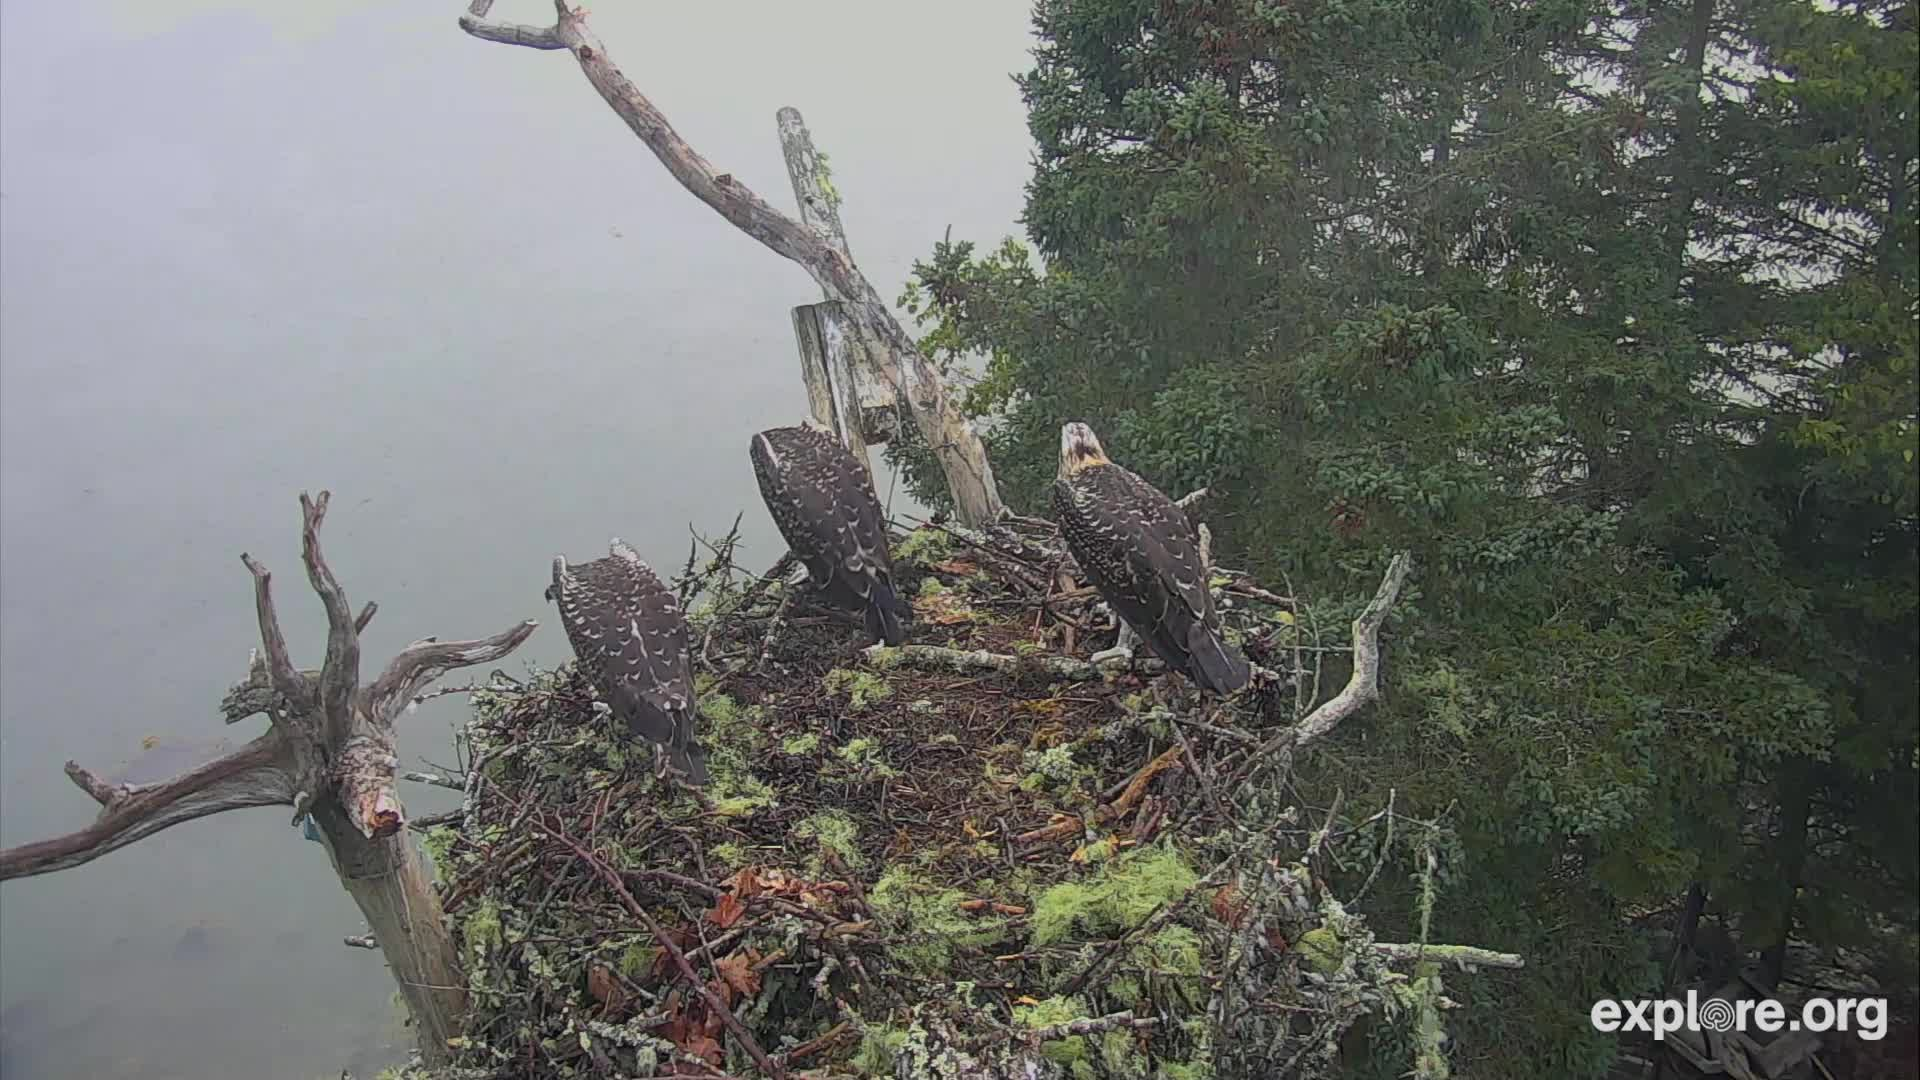 Bald Eagle snatches an Osprey chick GIFs